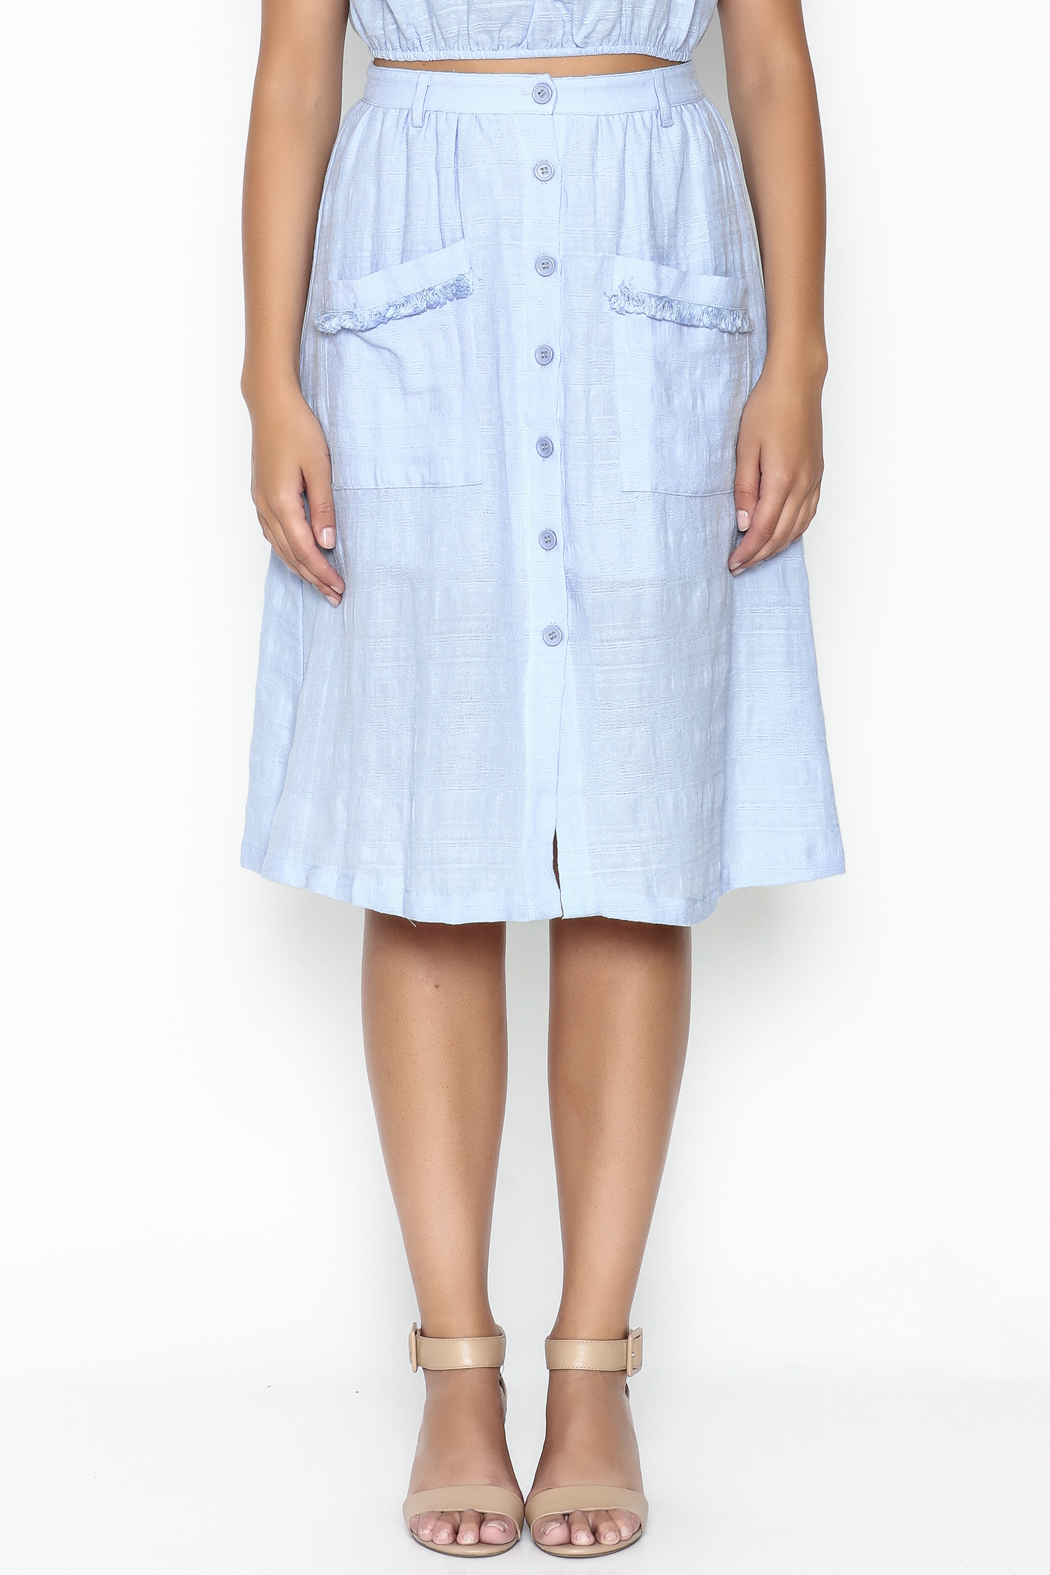 Hommage Button Down Skirt - Front Full Image